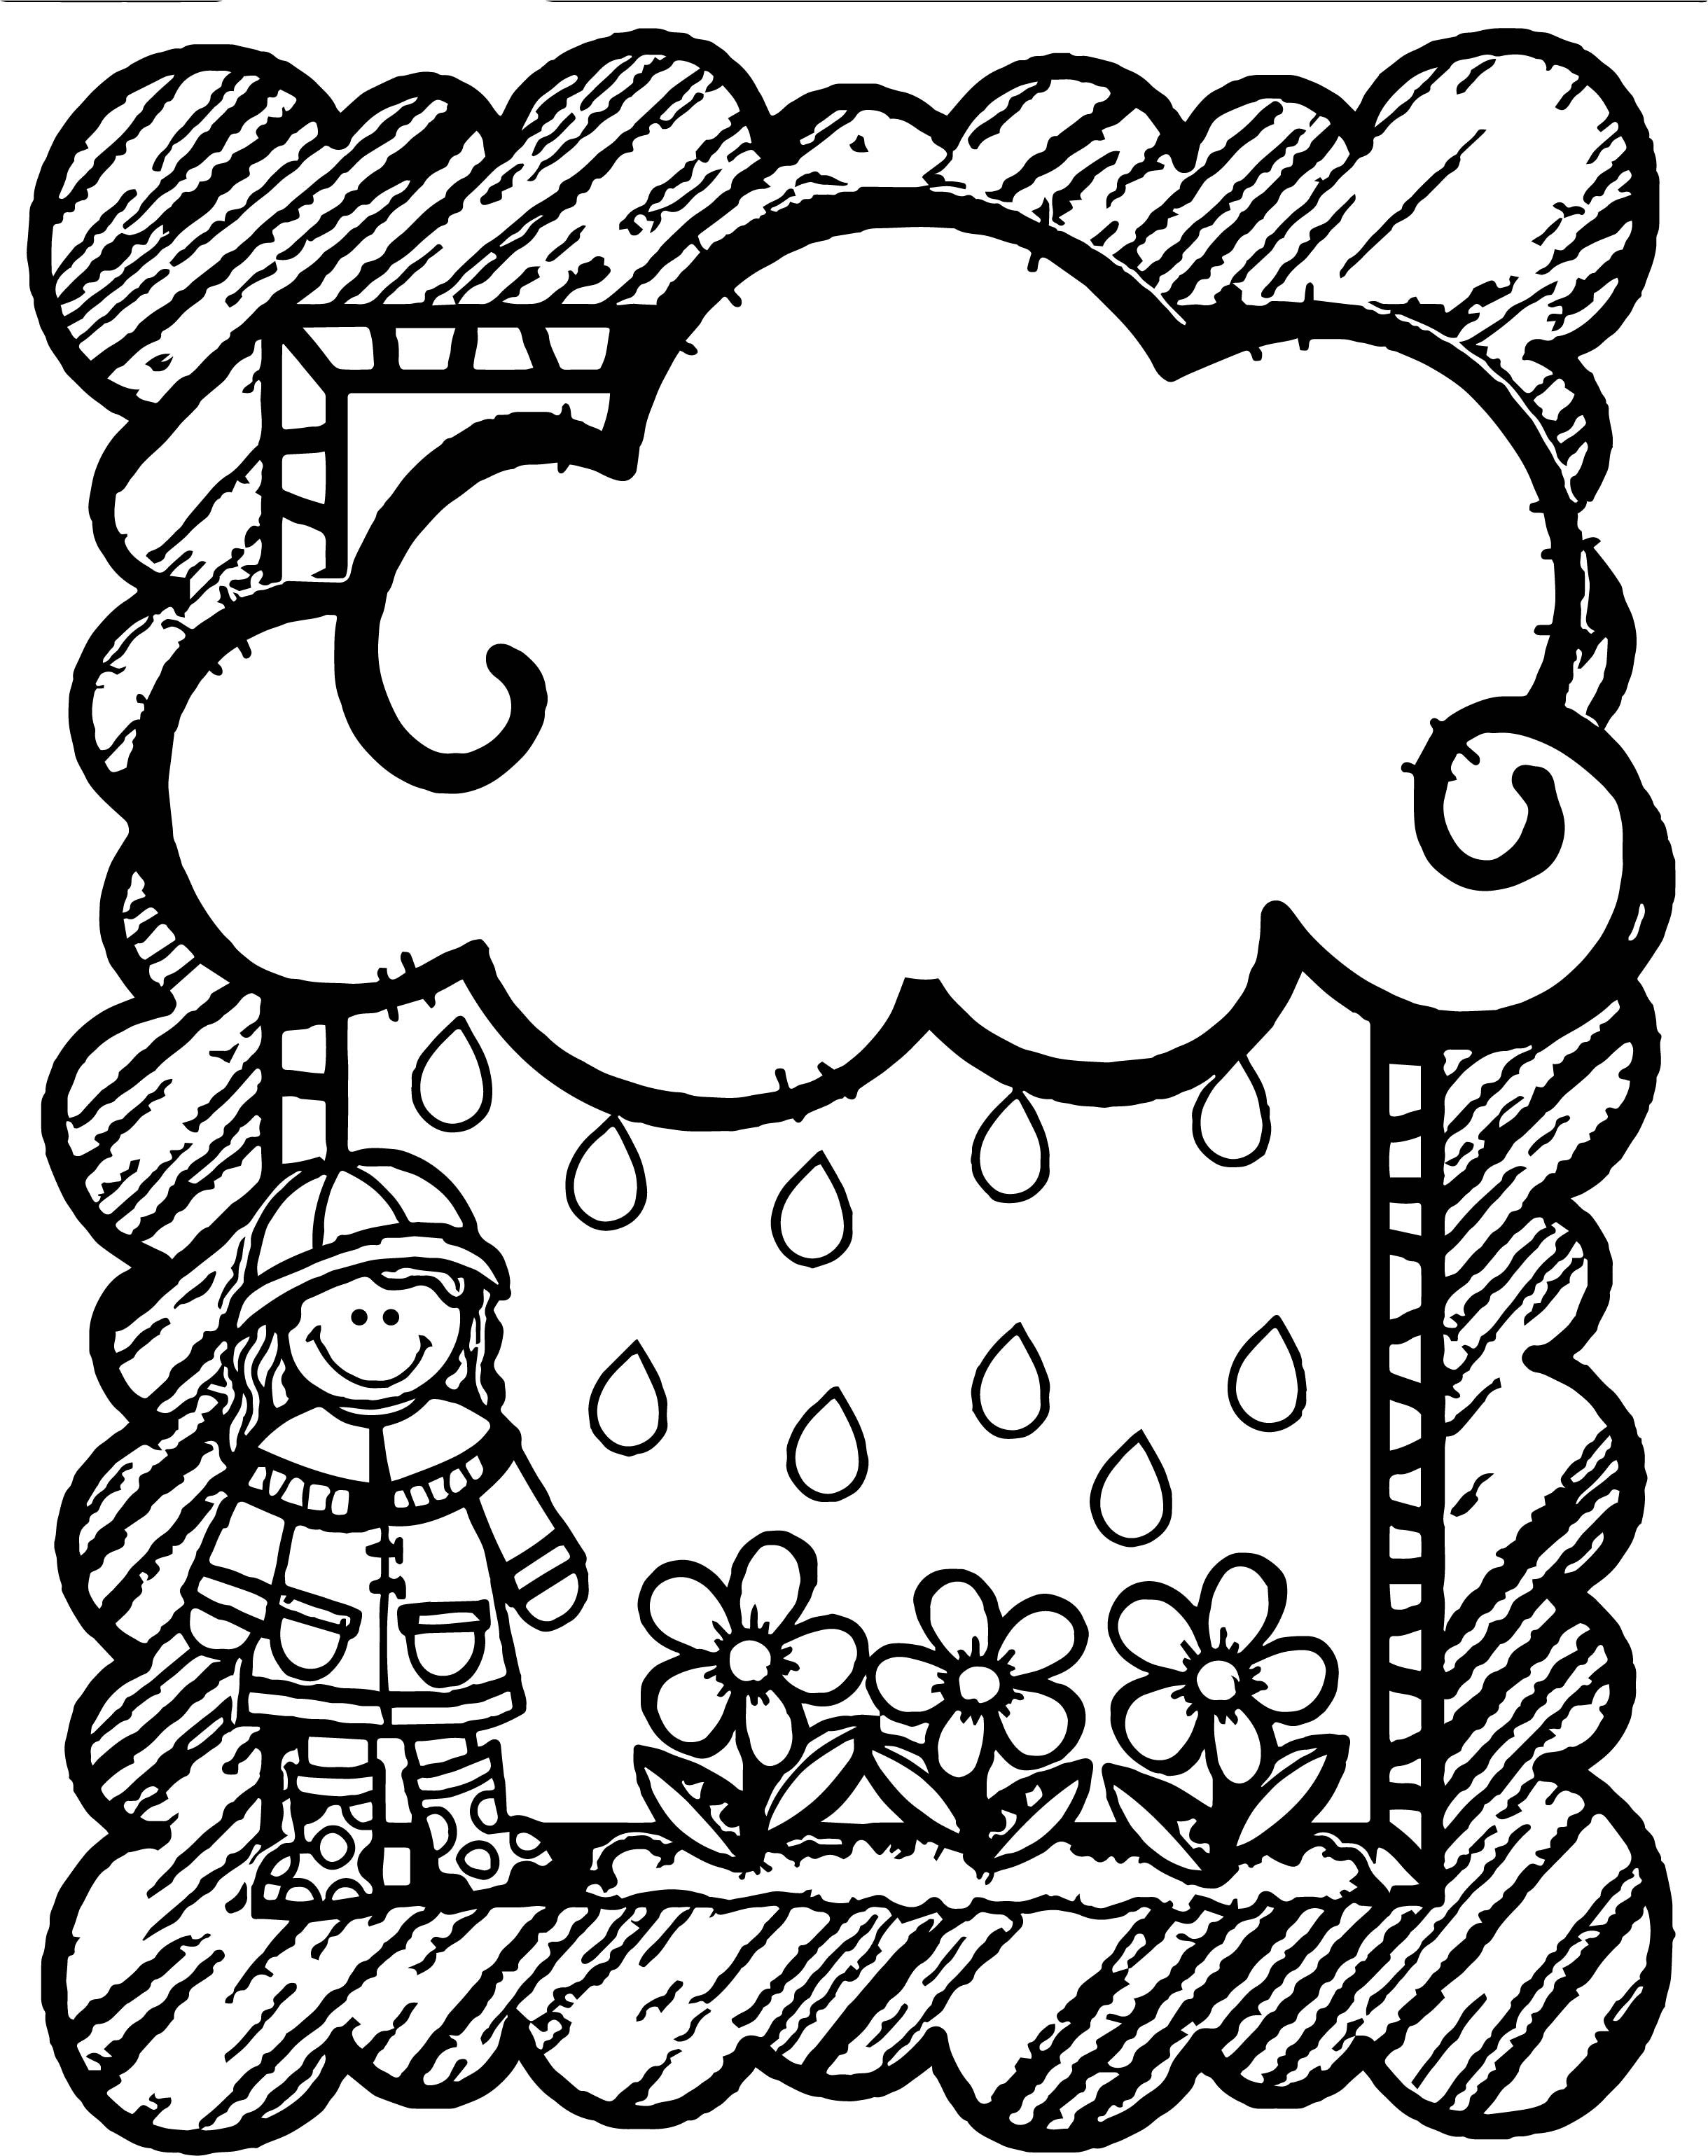 April Shower Girl Flower Cloud Frame Coloring Page